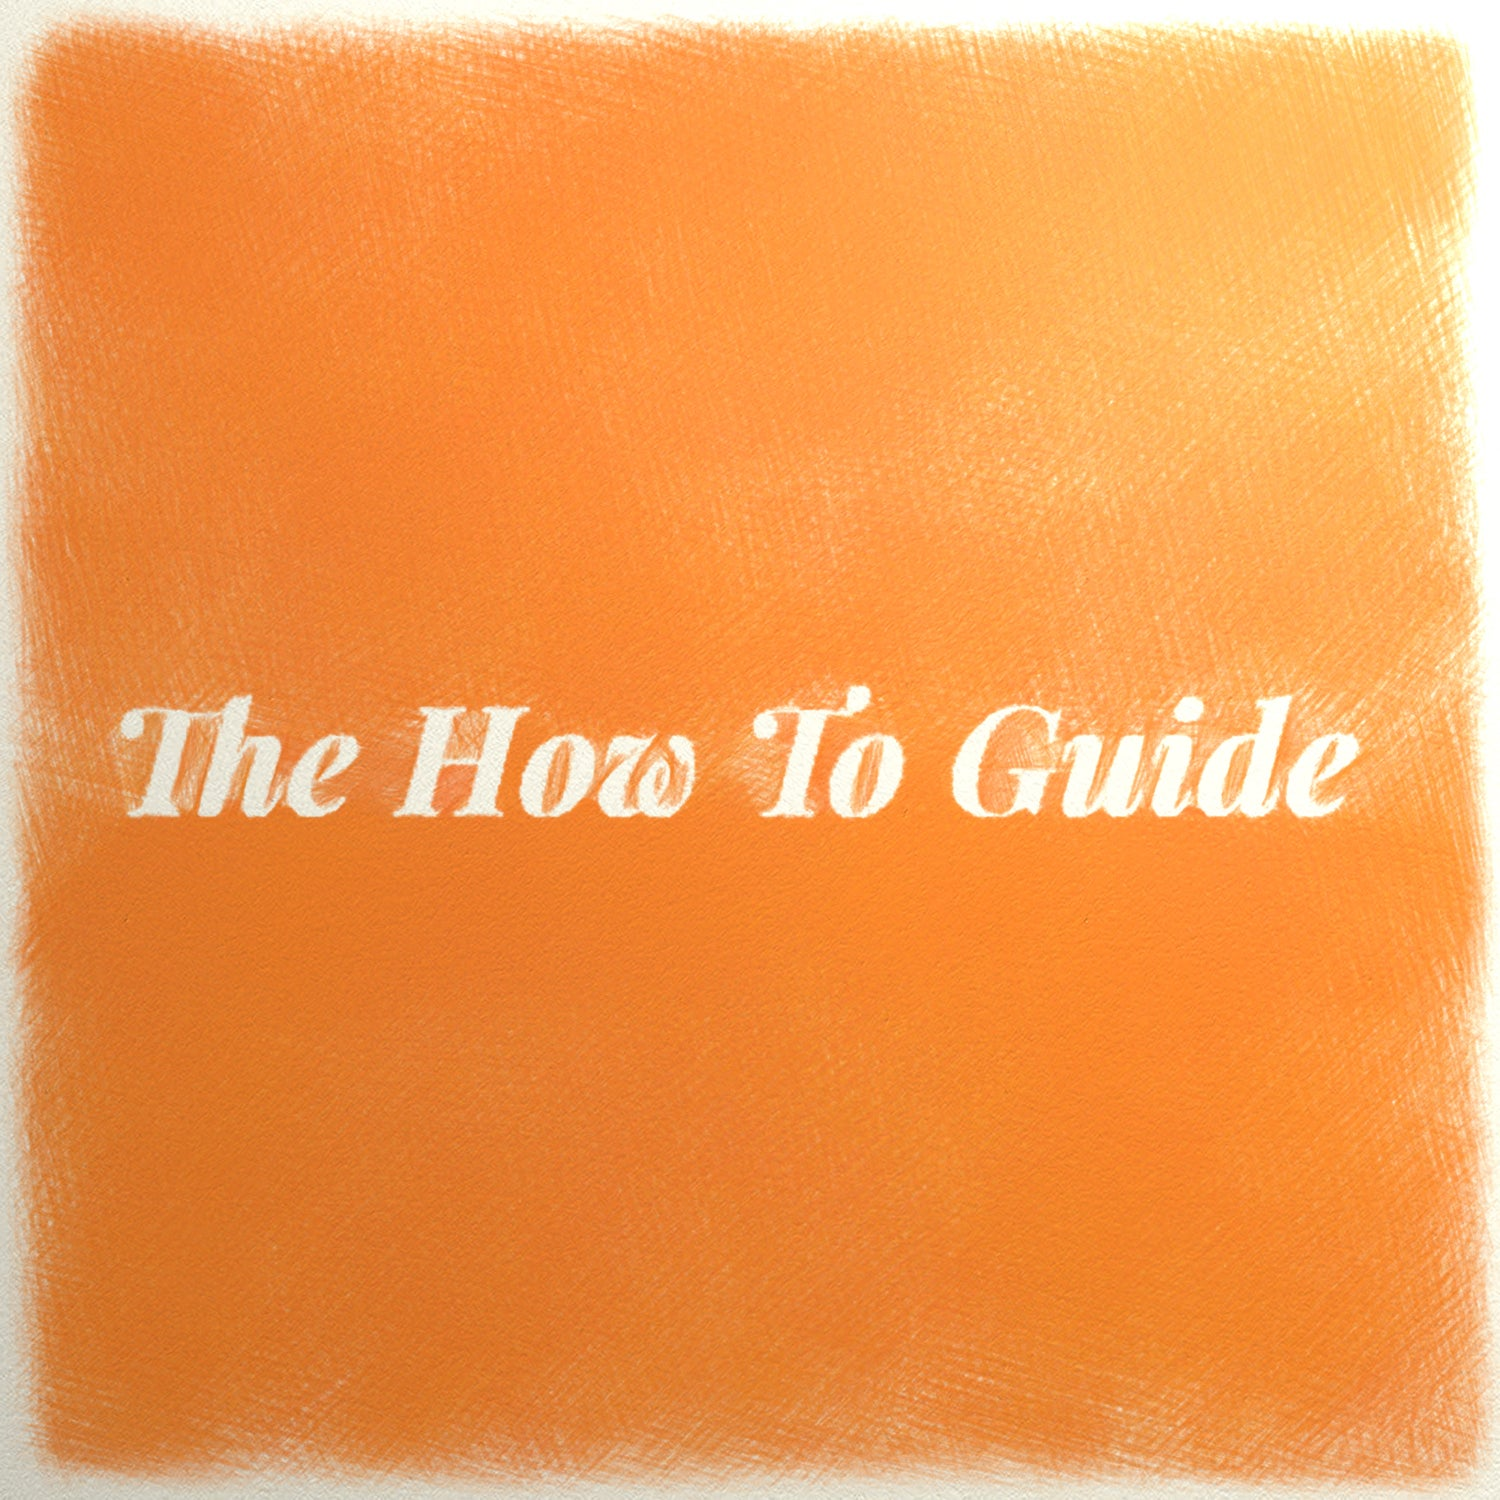 Image of The How to Guide